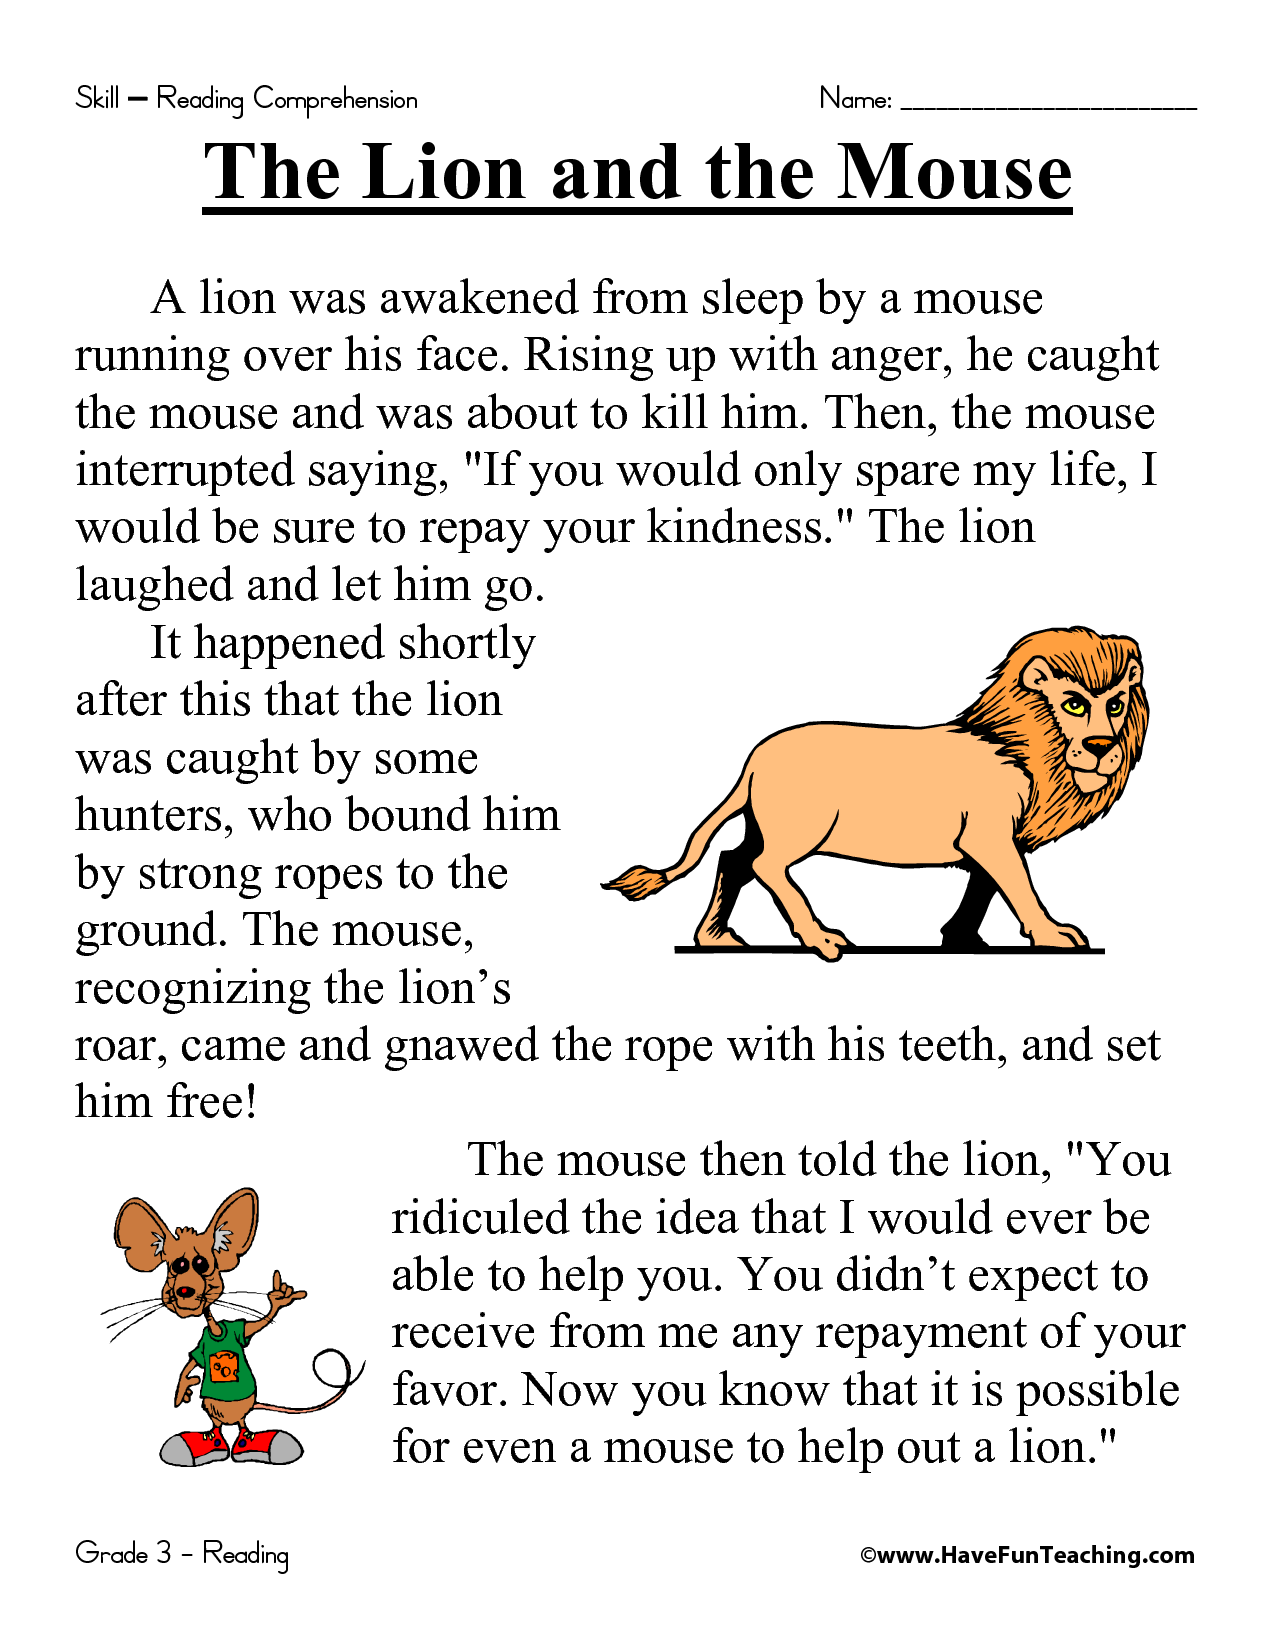 Worksheet Comprehension Free Worksheets first grade reading comprehension worksheets the lion and mouse worksheet